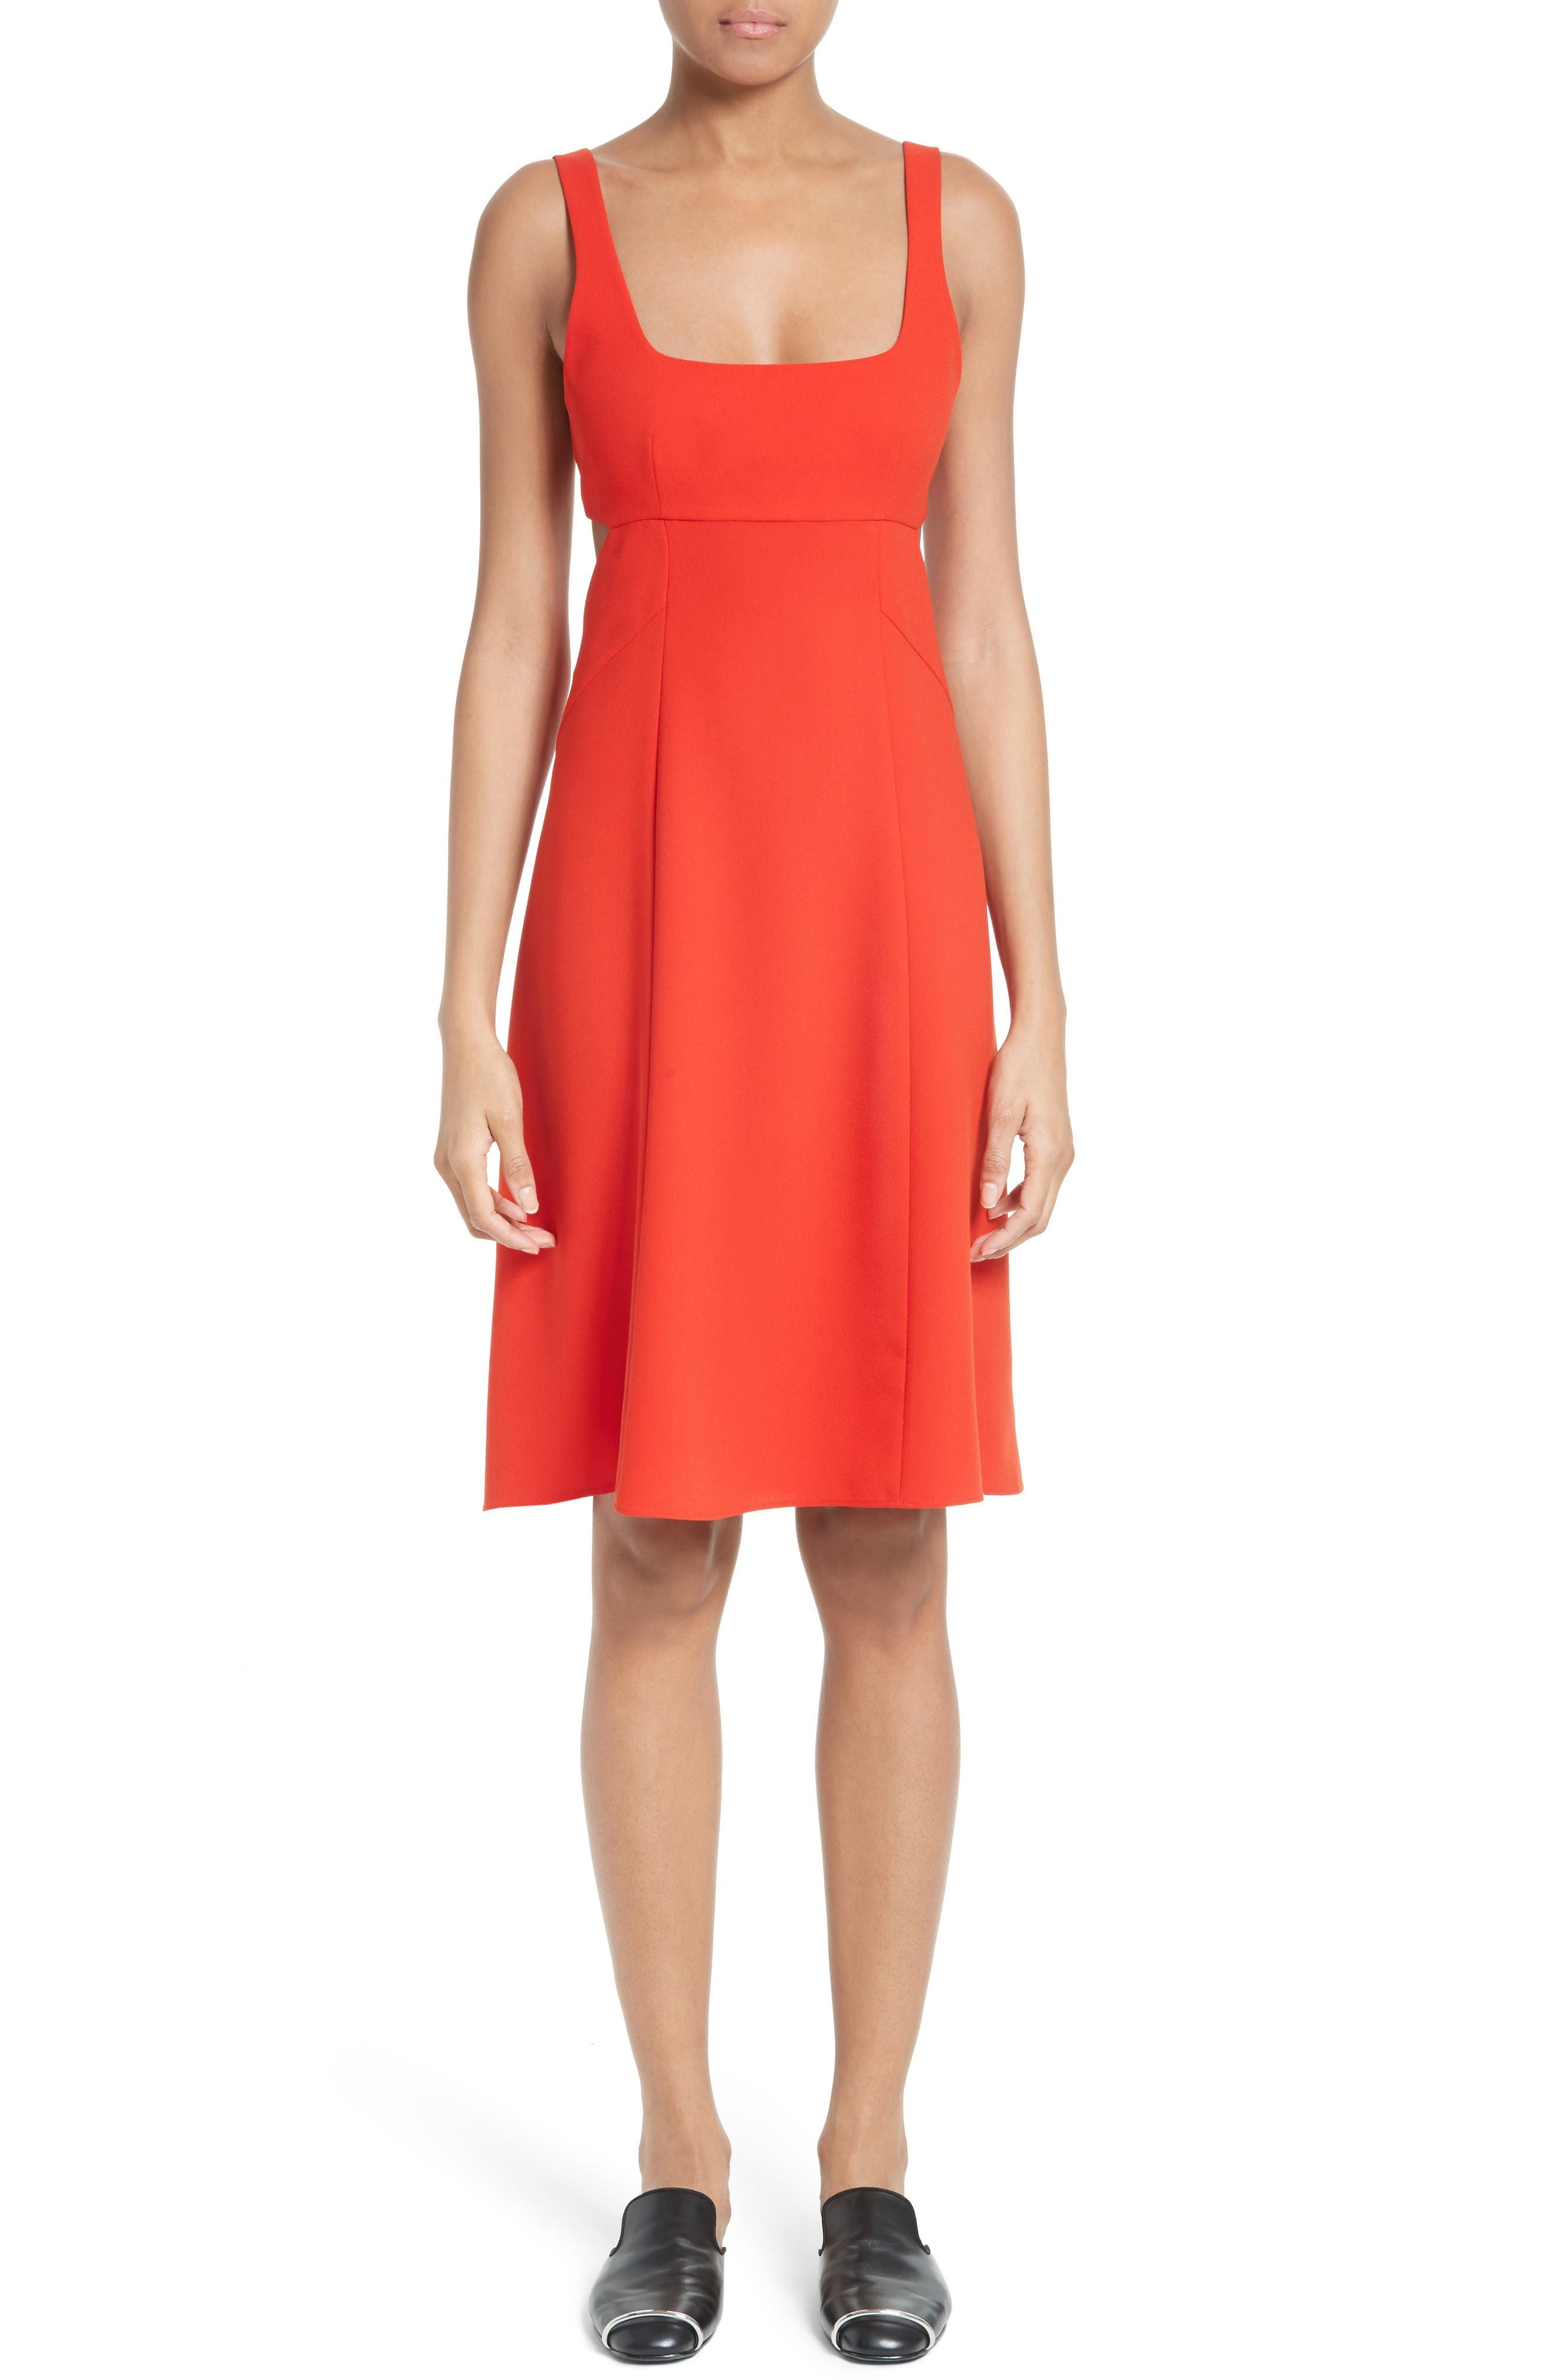 T BY ALEXANDER WANG Fit & Flare Dress